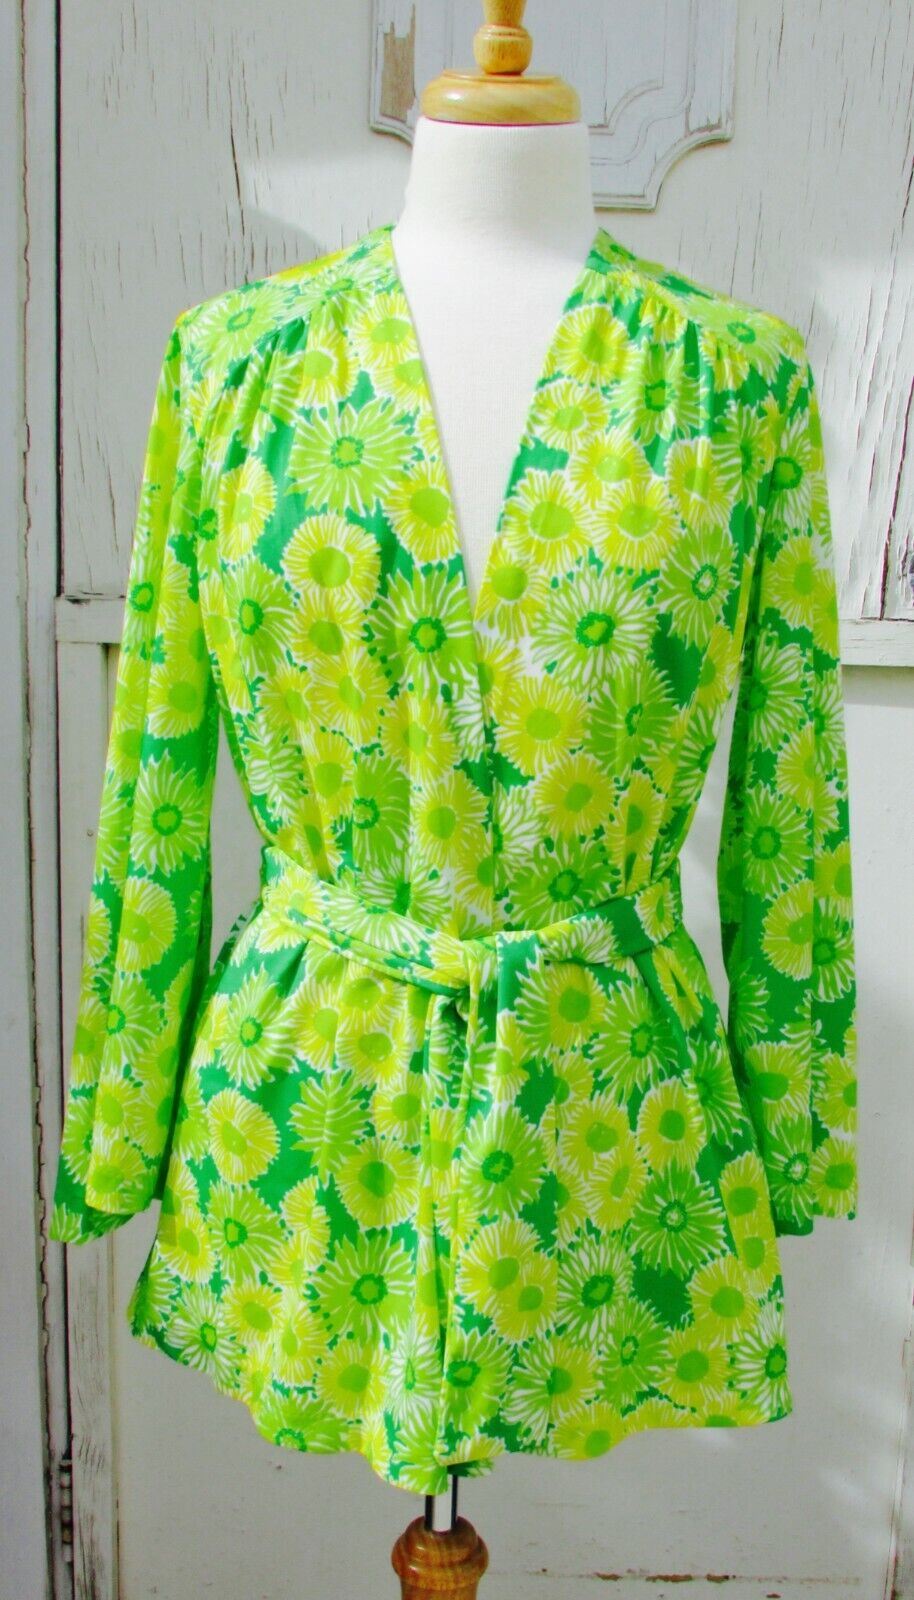 GREEN NEON VTG 70's Swimwear Cover Up-Perfection … - image 1